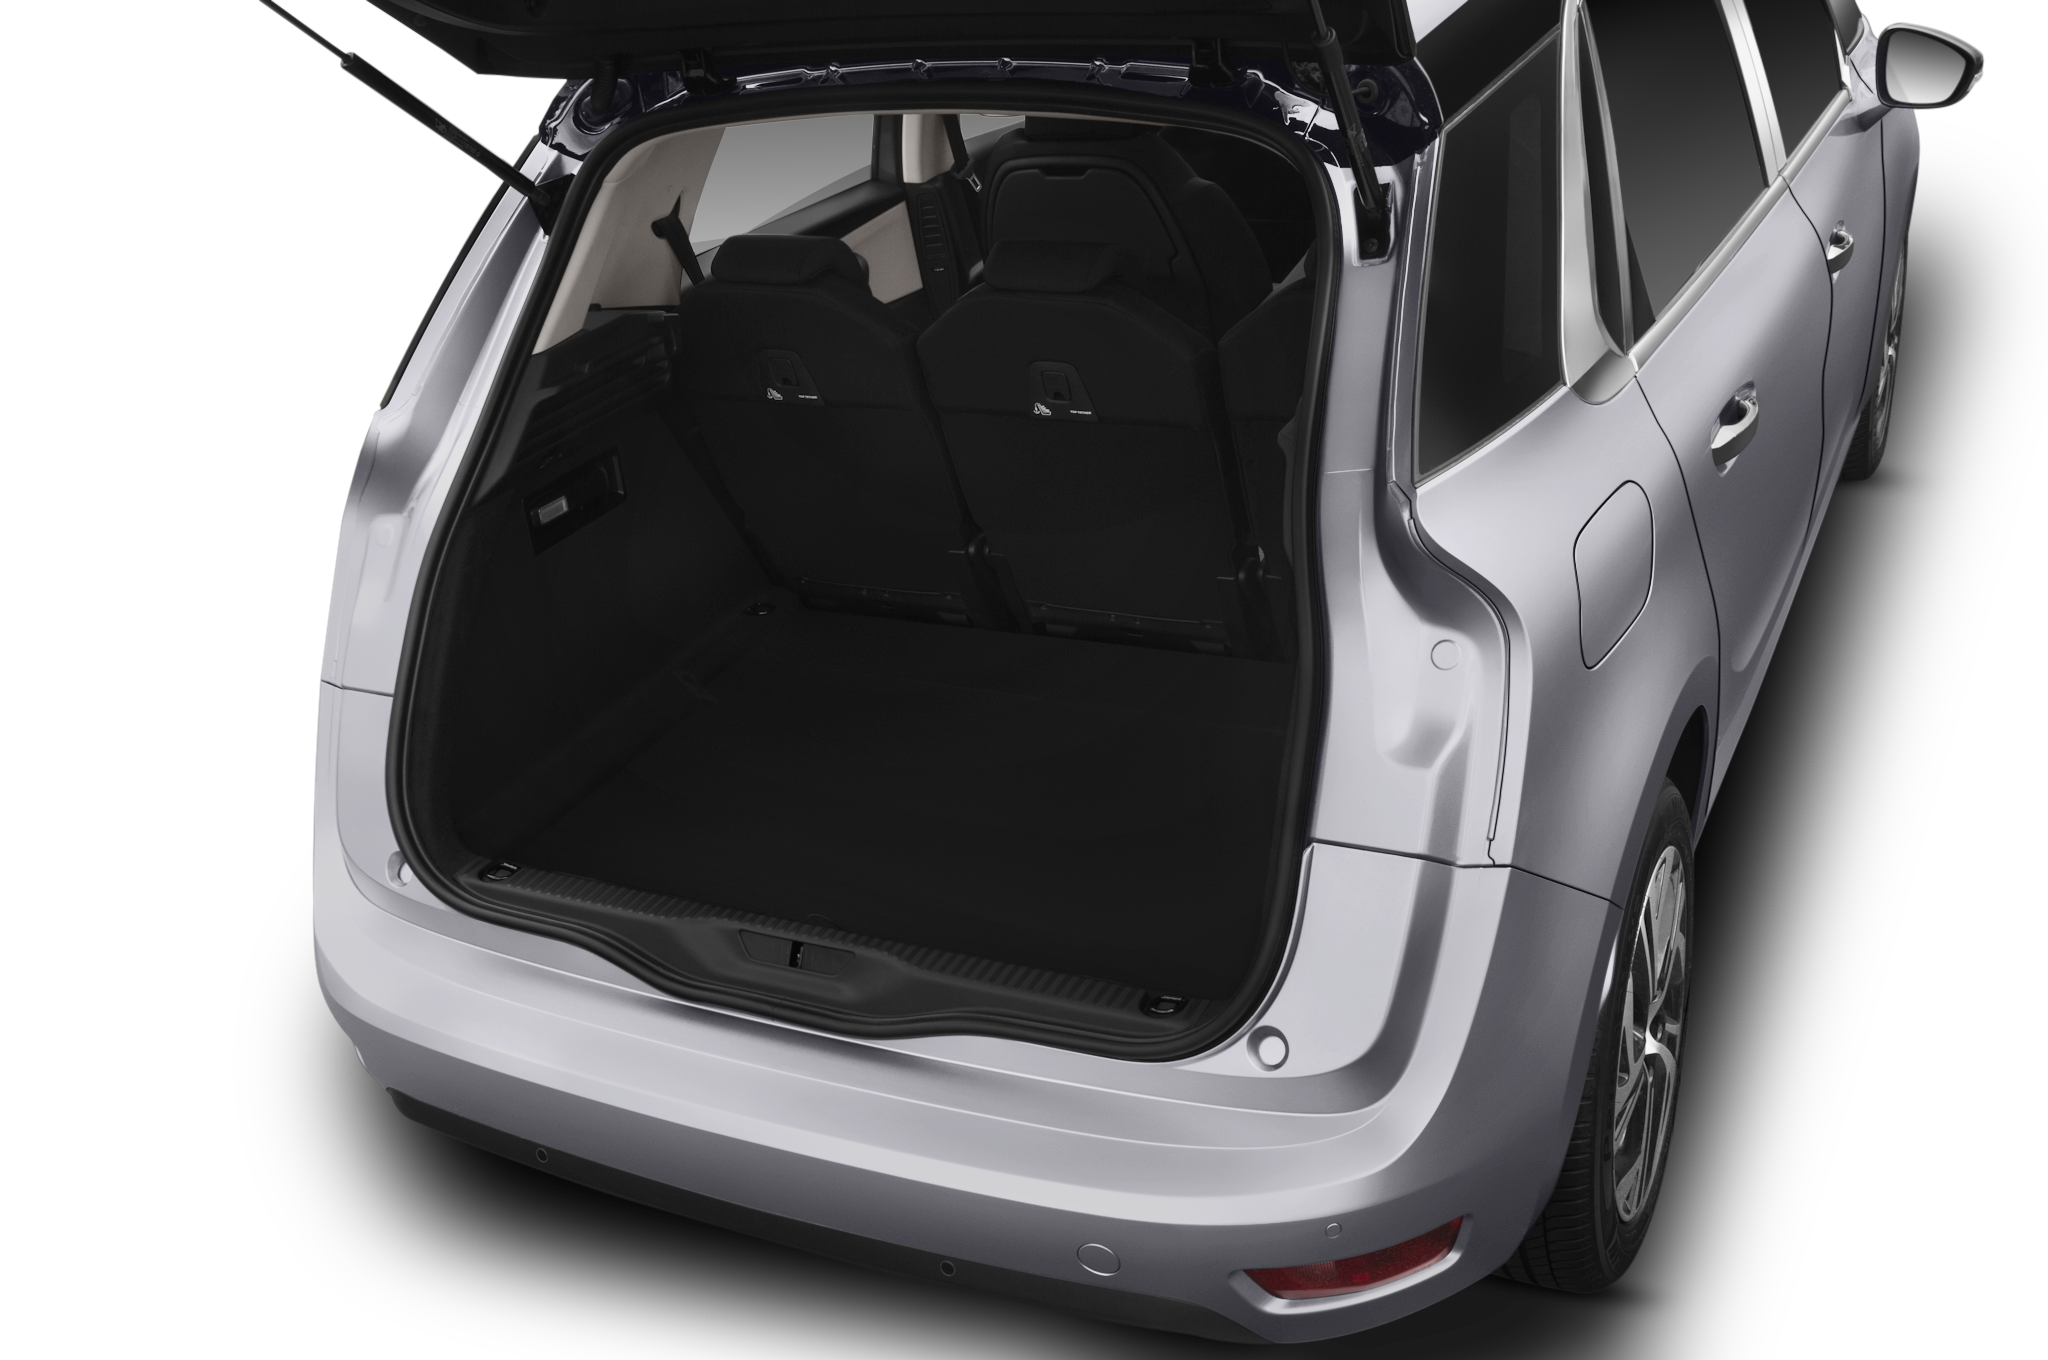 citroen c4 grand picasso vehicle review arval uk. Black Bedroom Furniture Sets. Home Design Ideas